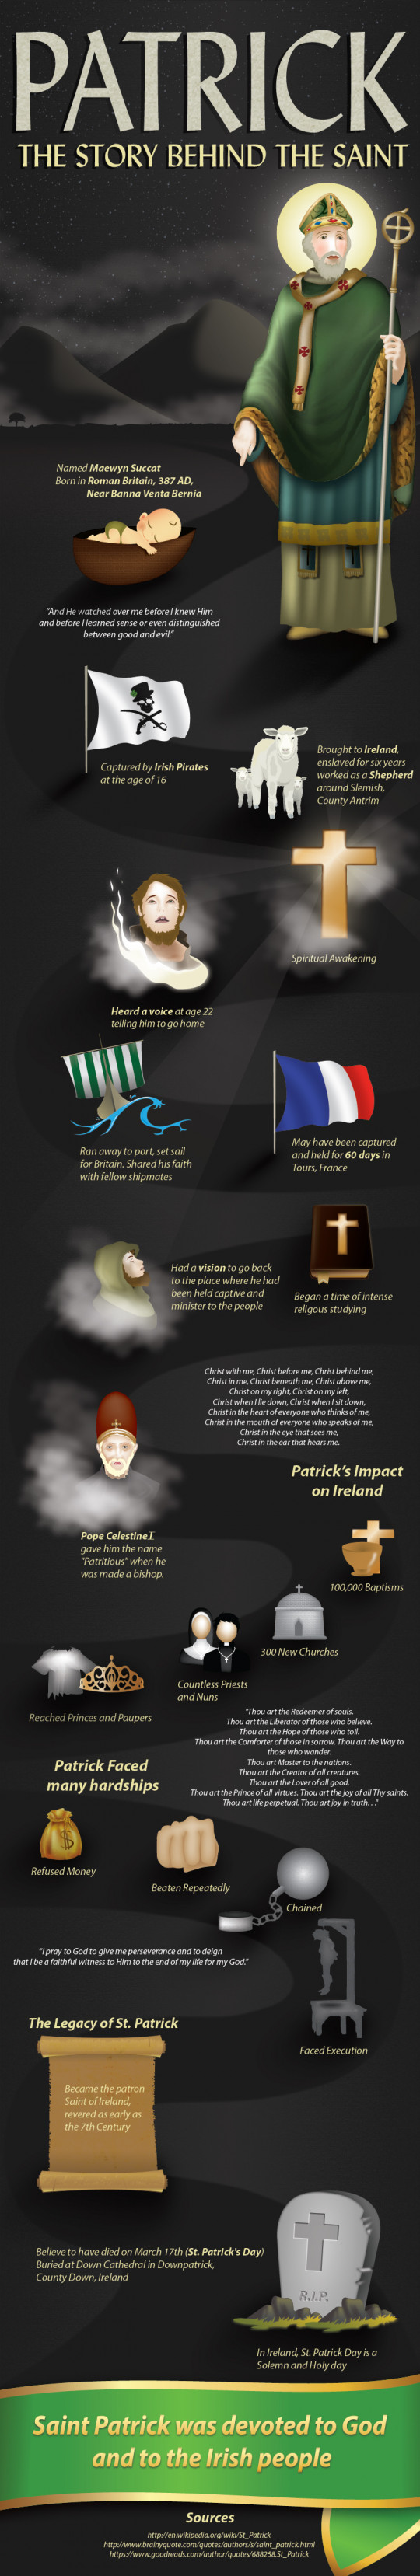 Patrick: The Story Behind The Saint